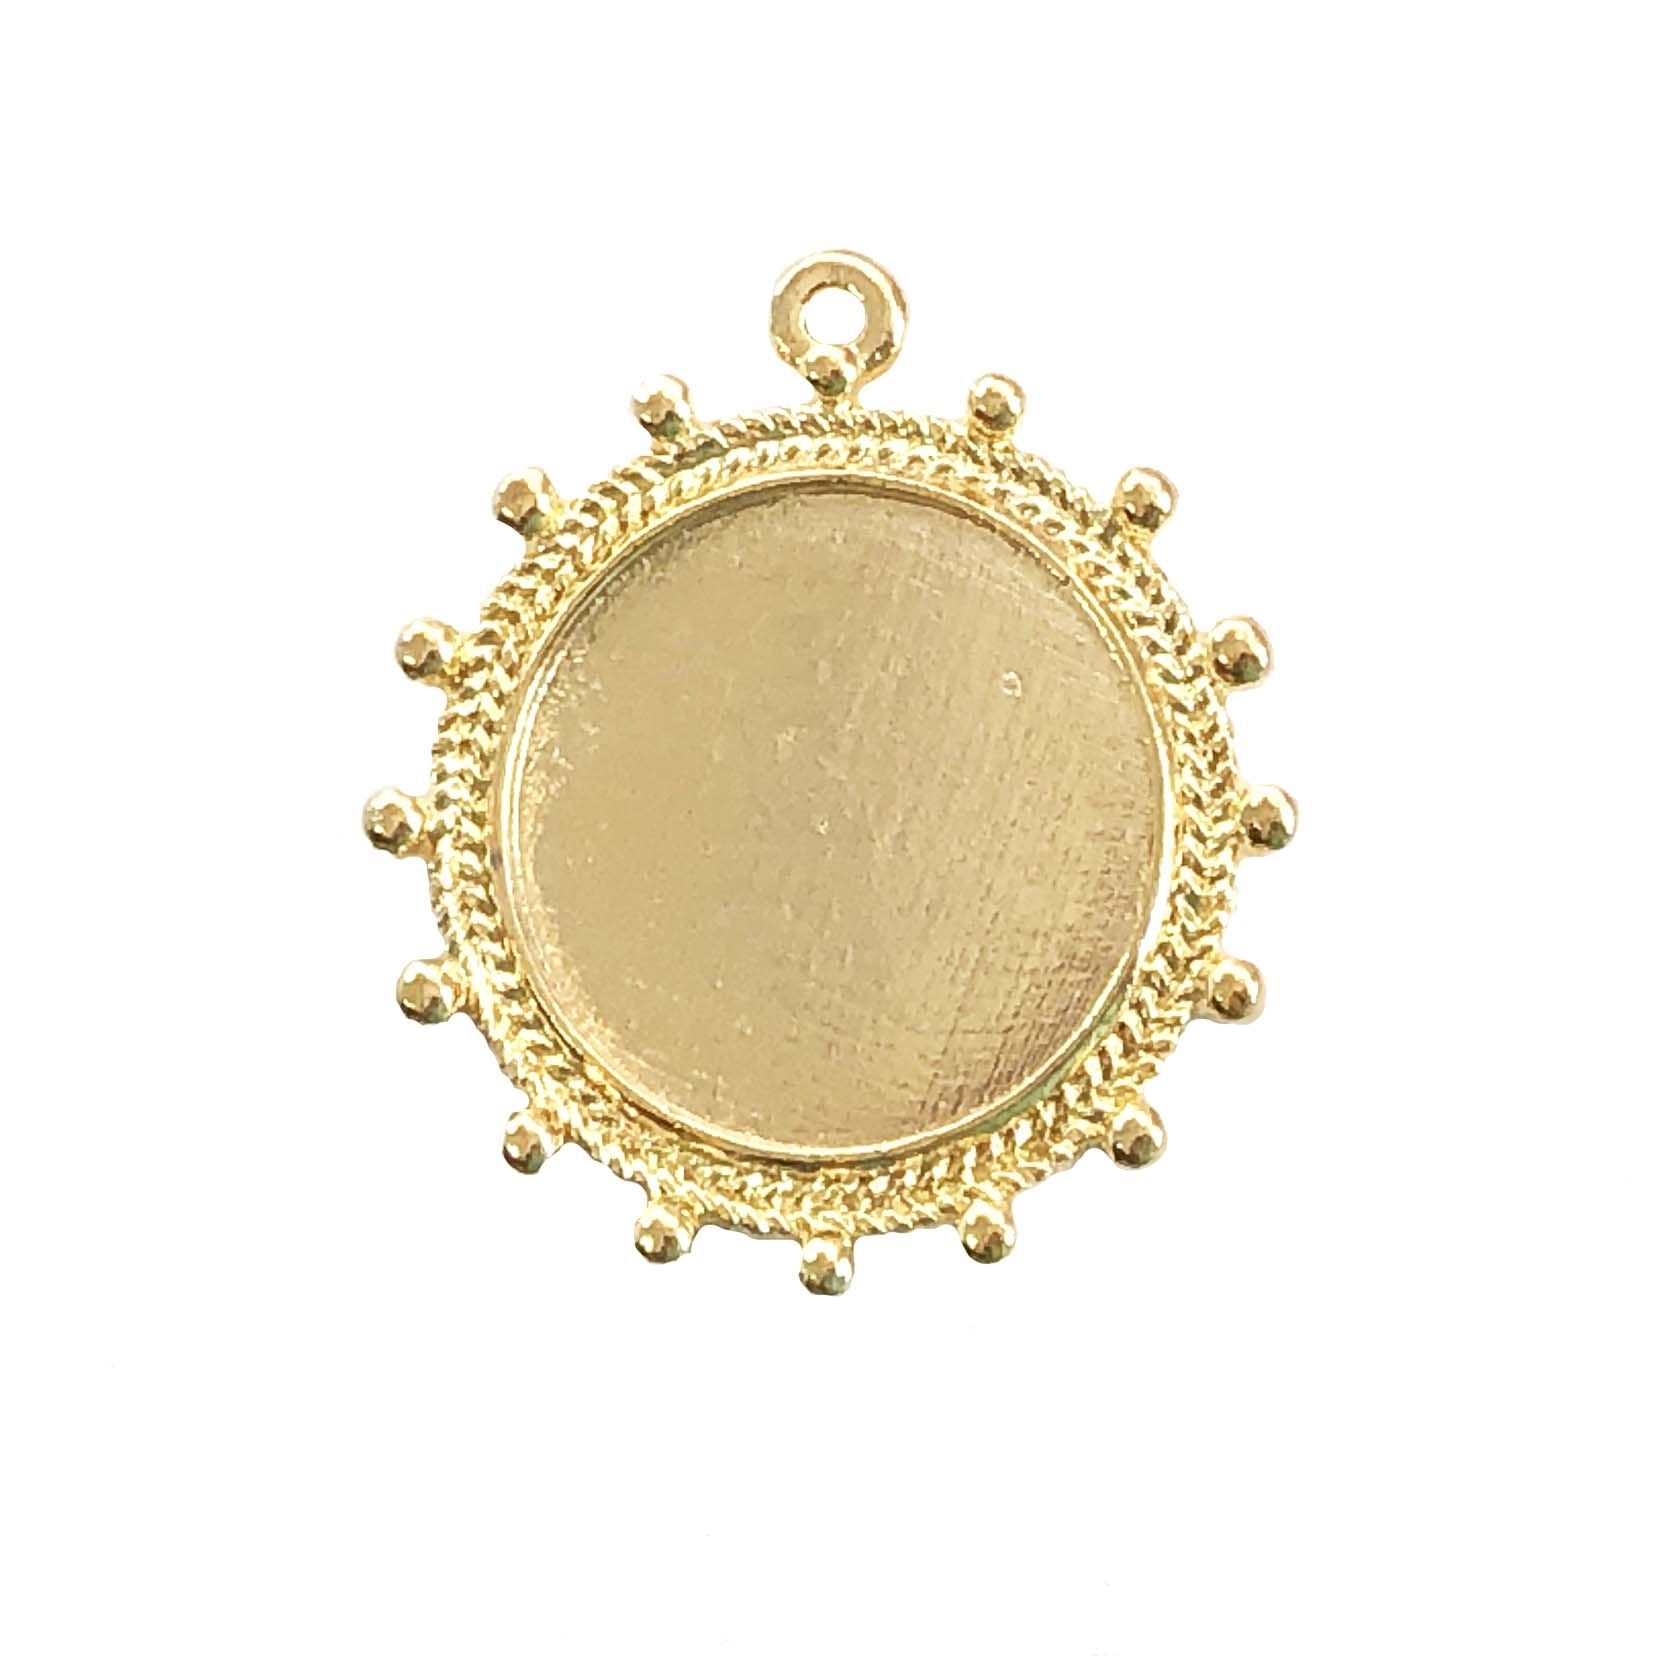 22k gold finish, cameo pendant, 063, lead free pewter, B'sue by 1928, gold plate pewter, antique, vintage jewelry parts, pewter jewelry parts, nickel free finish, made in the USA, 1928 Company, designer jewelry, B'sue Boutiques